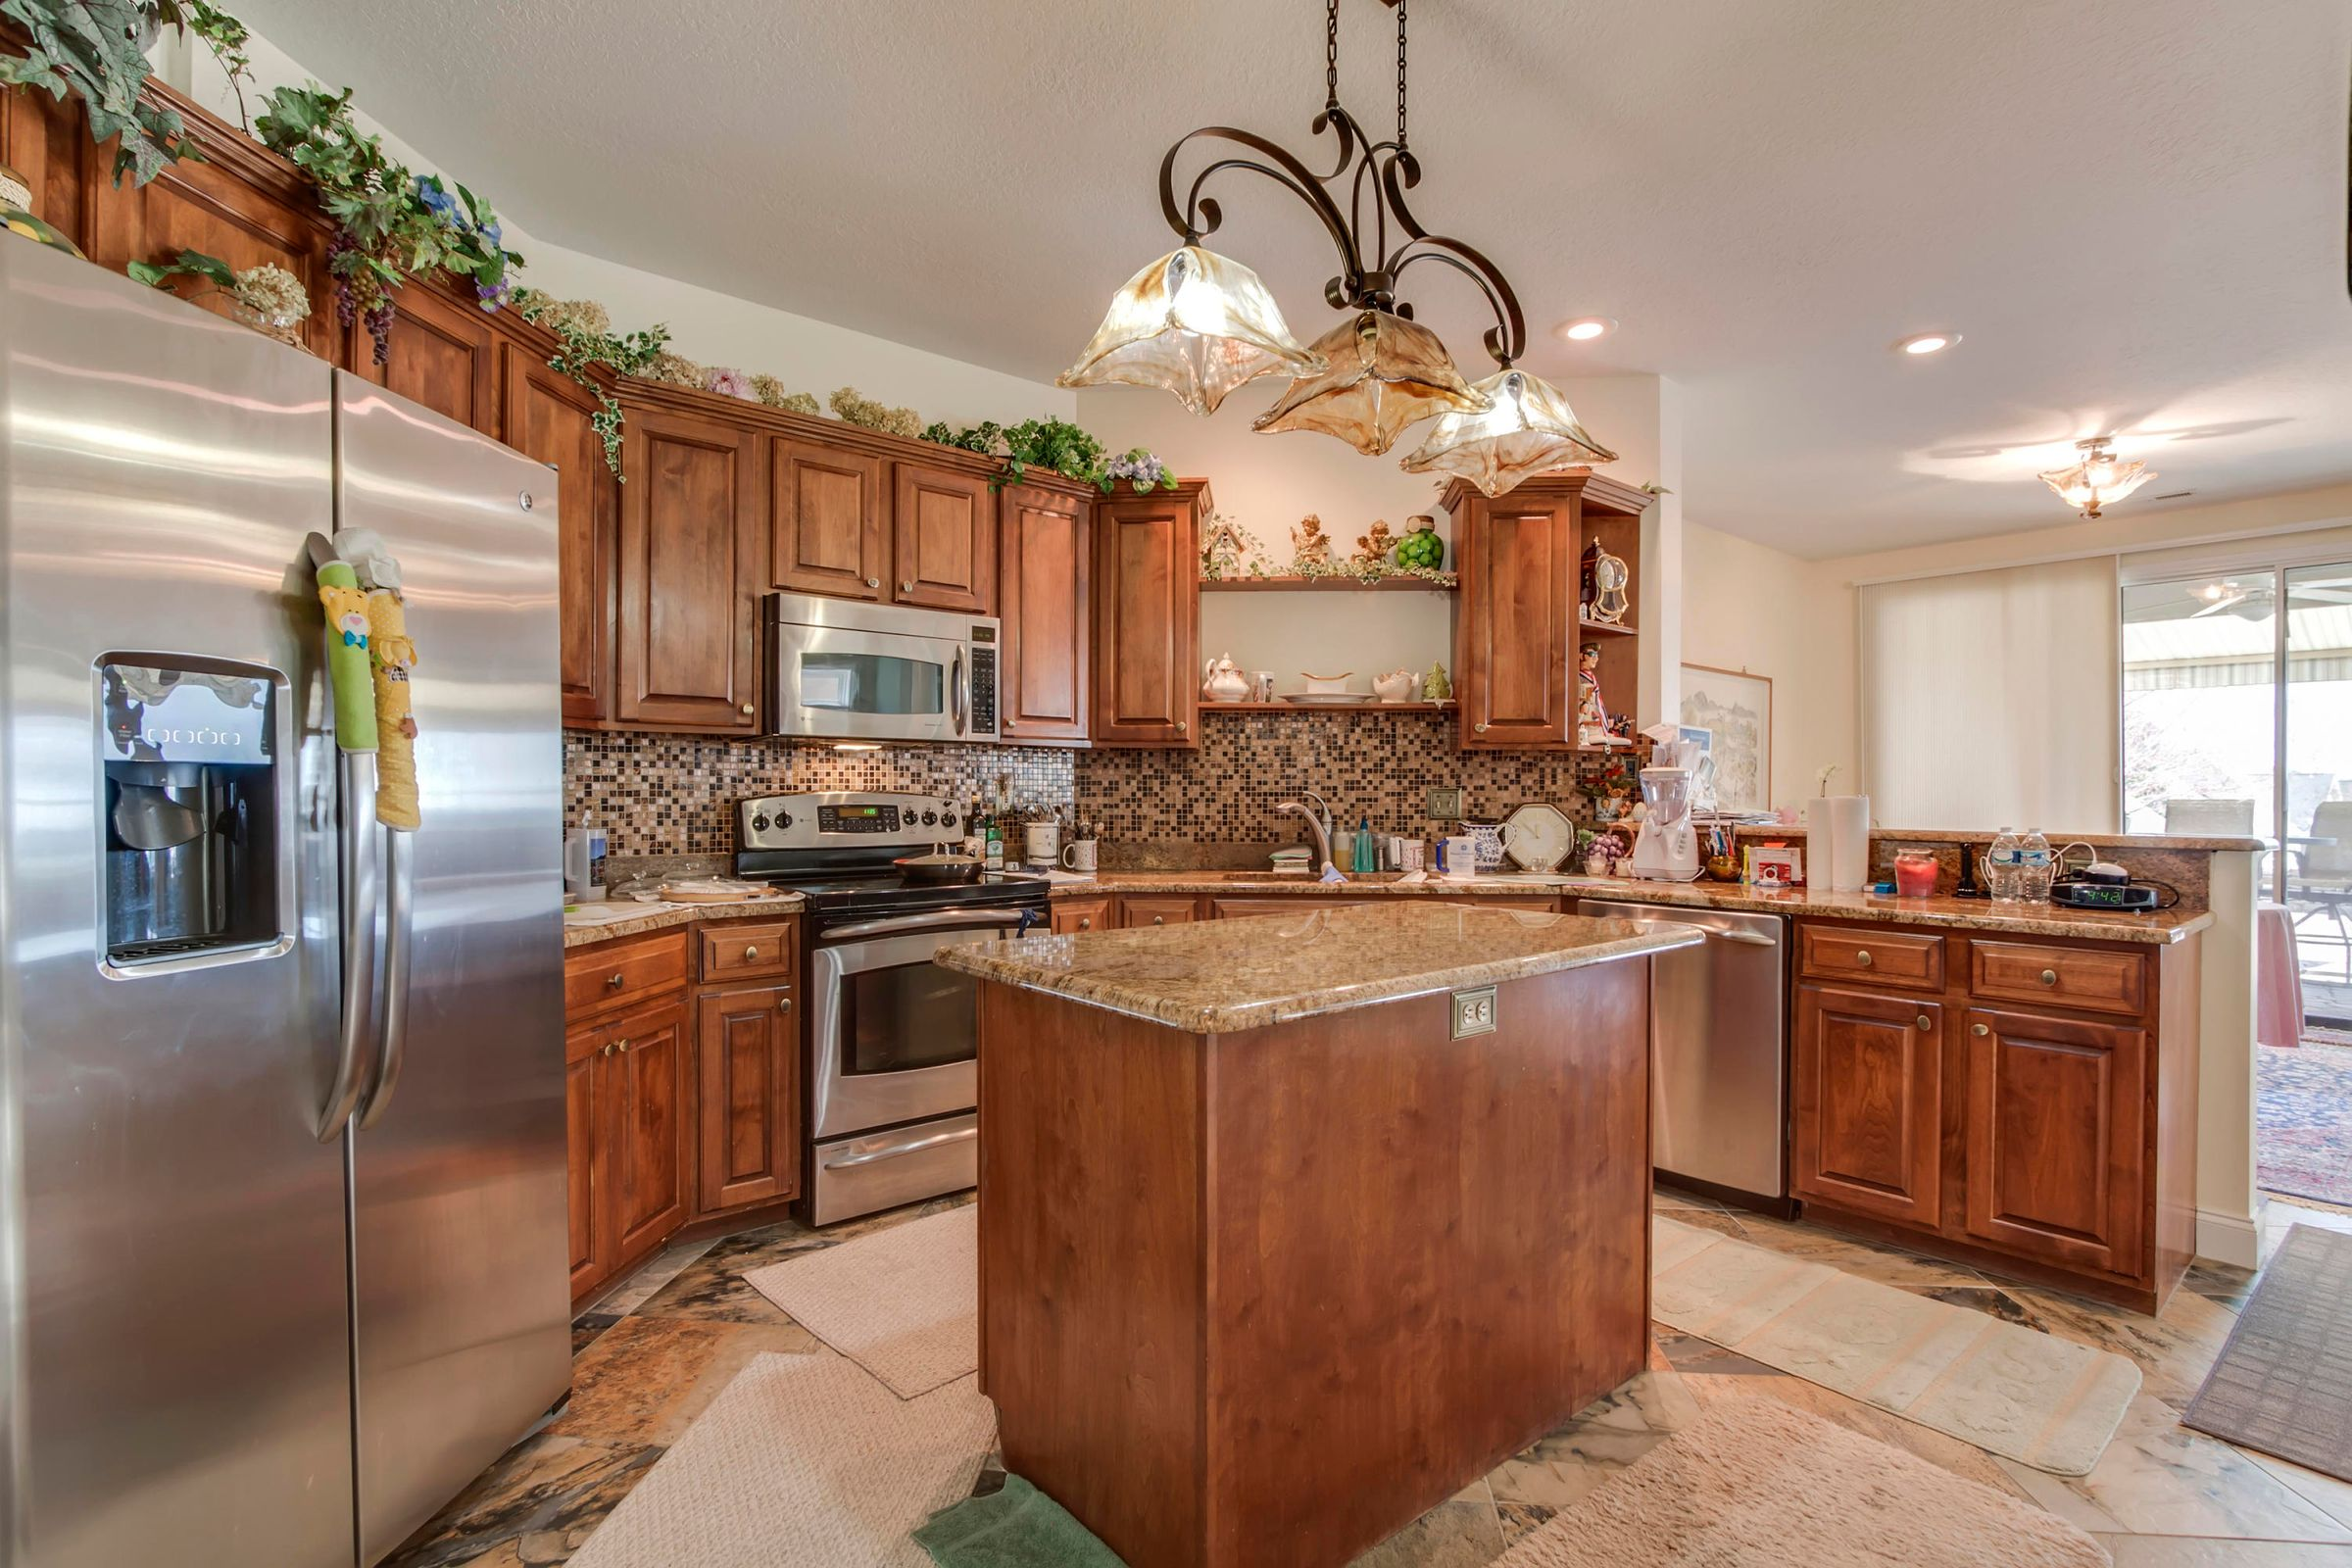 16_KingbirdDrive_224_Kitchen02